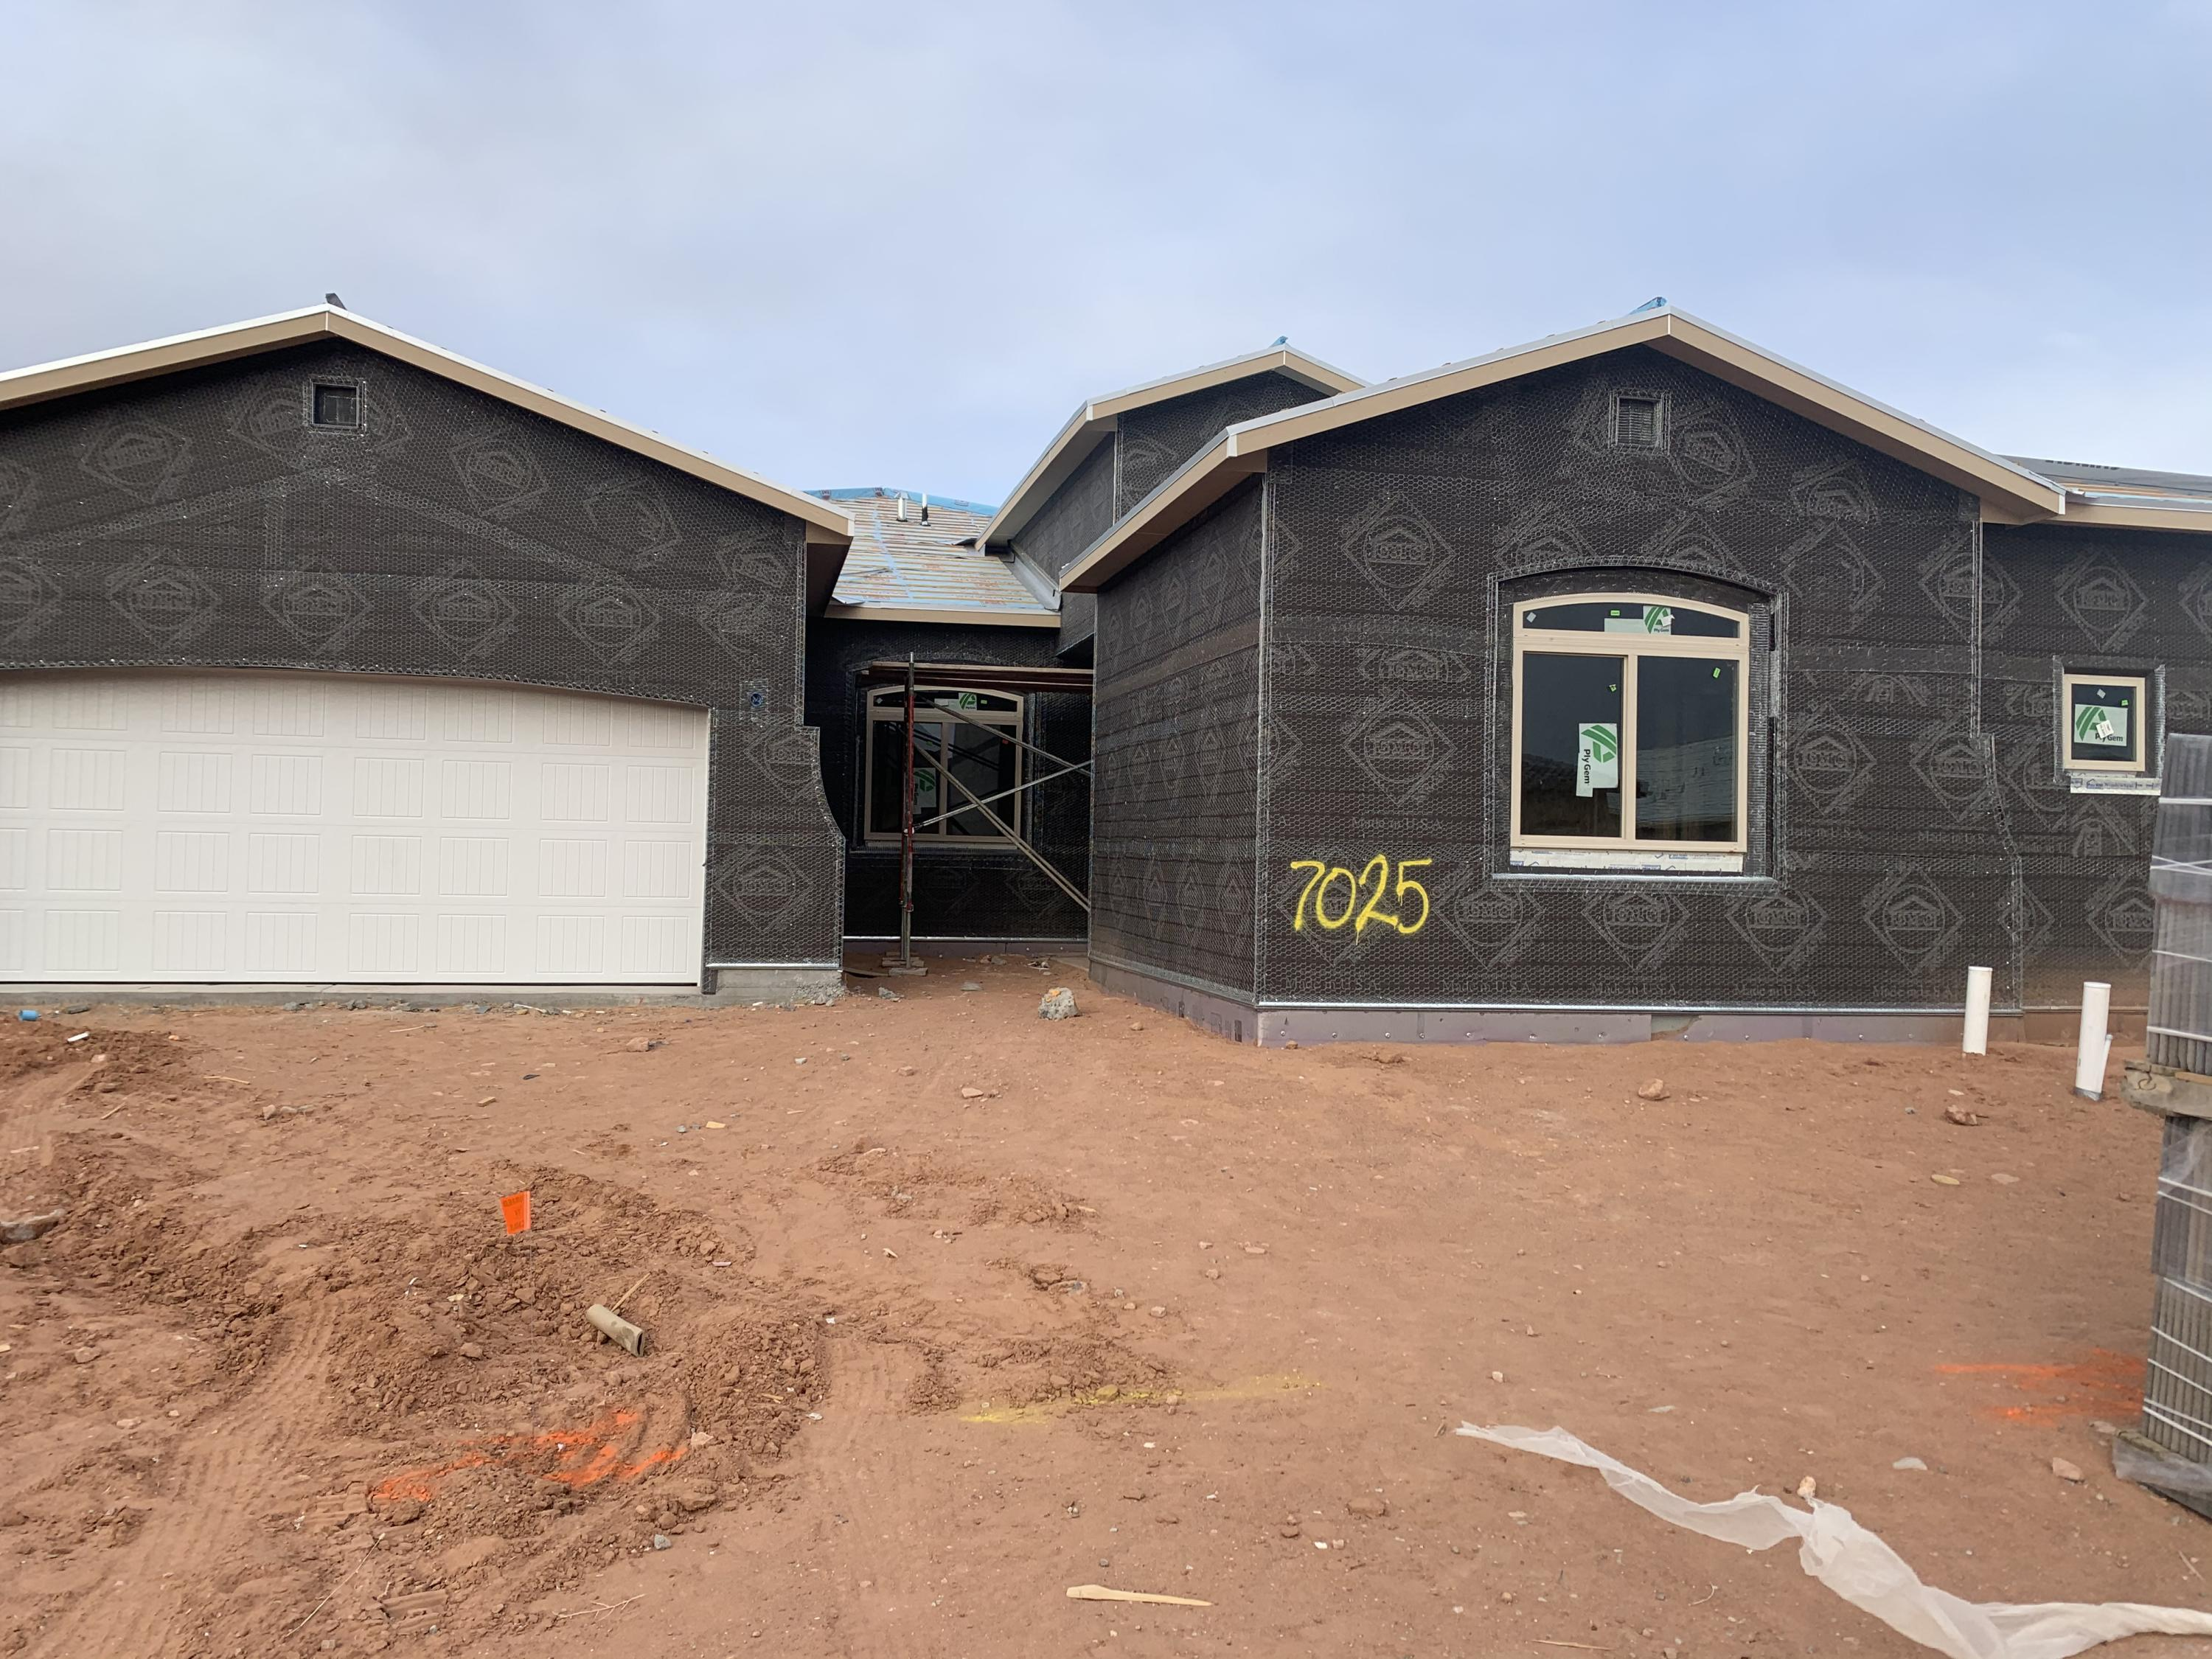 The Victoria by Abrazo Homes boasts a functional design with casita option included.  Views from the back yard complete this home with over 2800 square feet of living space.  The Jack and Jill beds with walk in closets or the Owner's suite offering his and hers closets. Granite counter tops and Gormet kitchen by Whirlpool. Late spring completion on this brand new Abrazo located in Lomas Encantadas. Comes with New home warranty and Abrazo Smart Package.